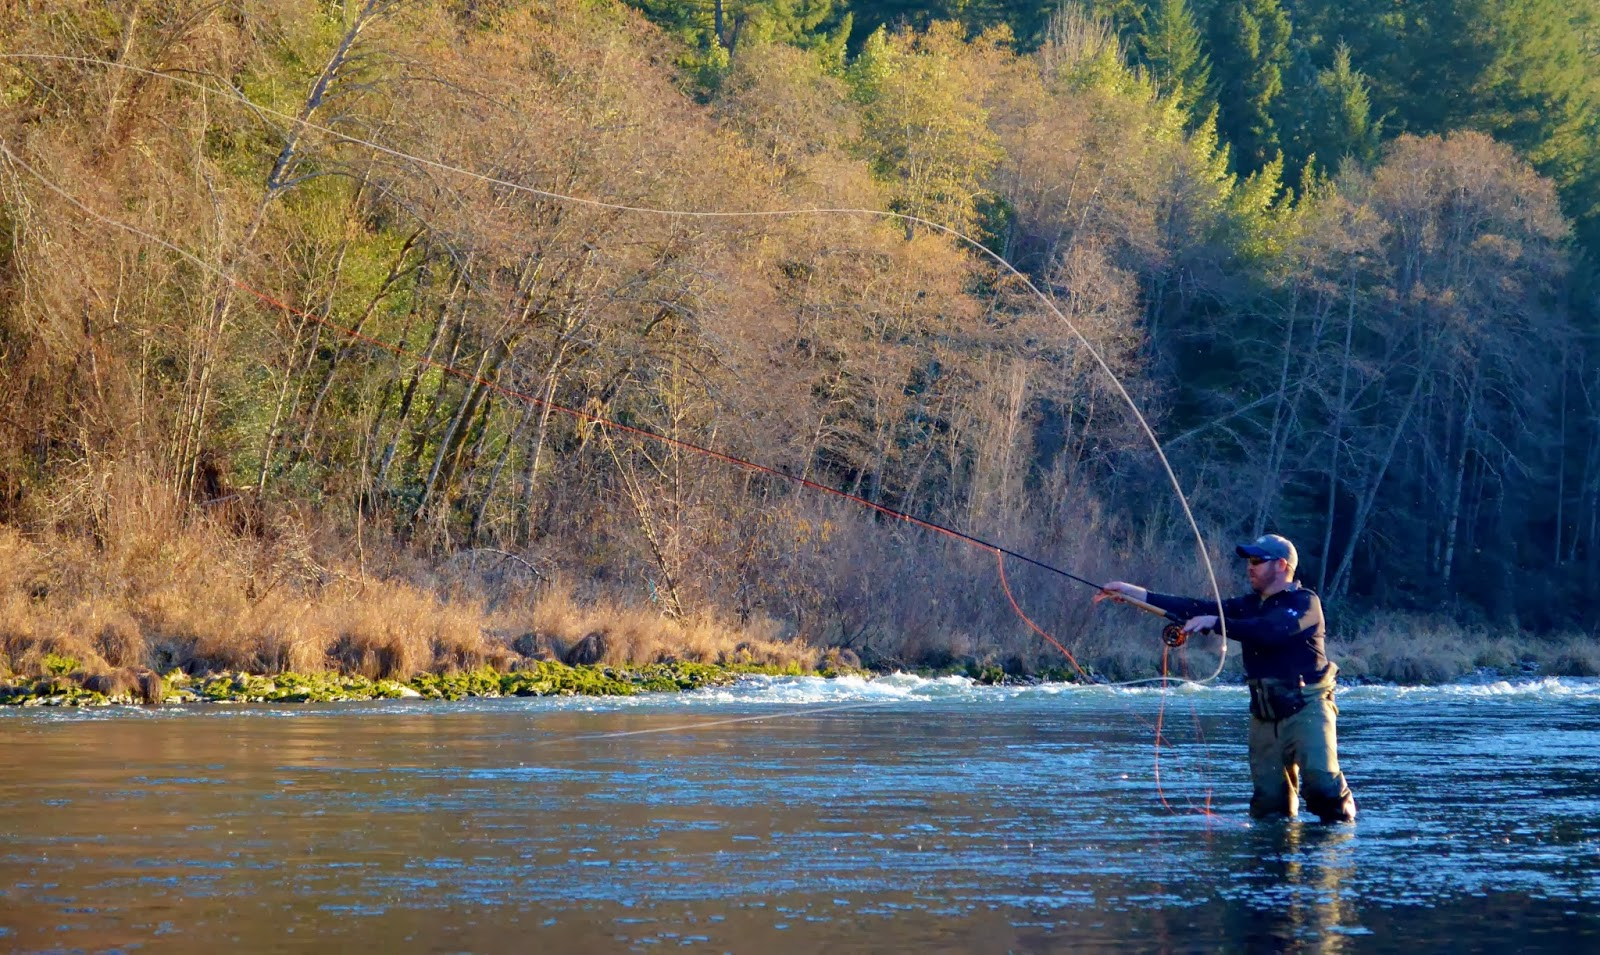 Rogue river and southern oregon fly fishing guide lts for Rogue river oregon fishing